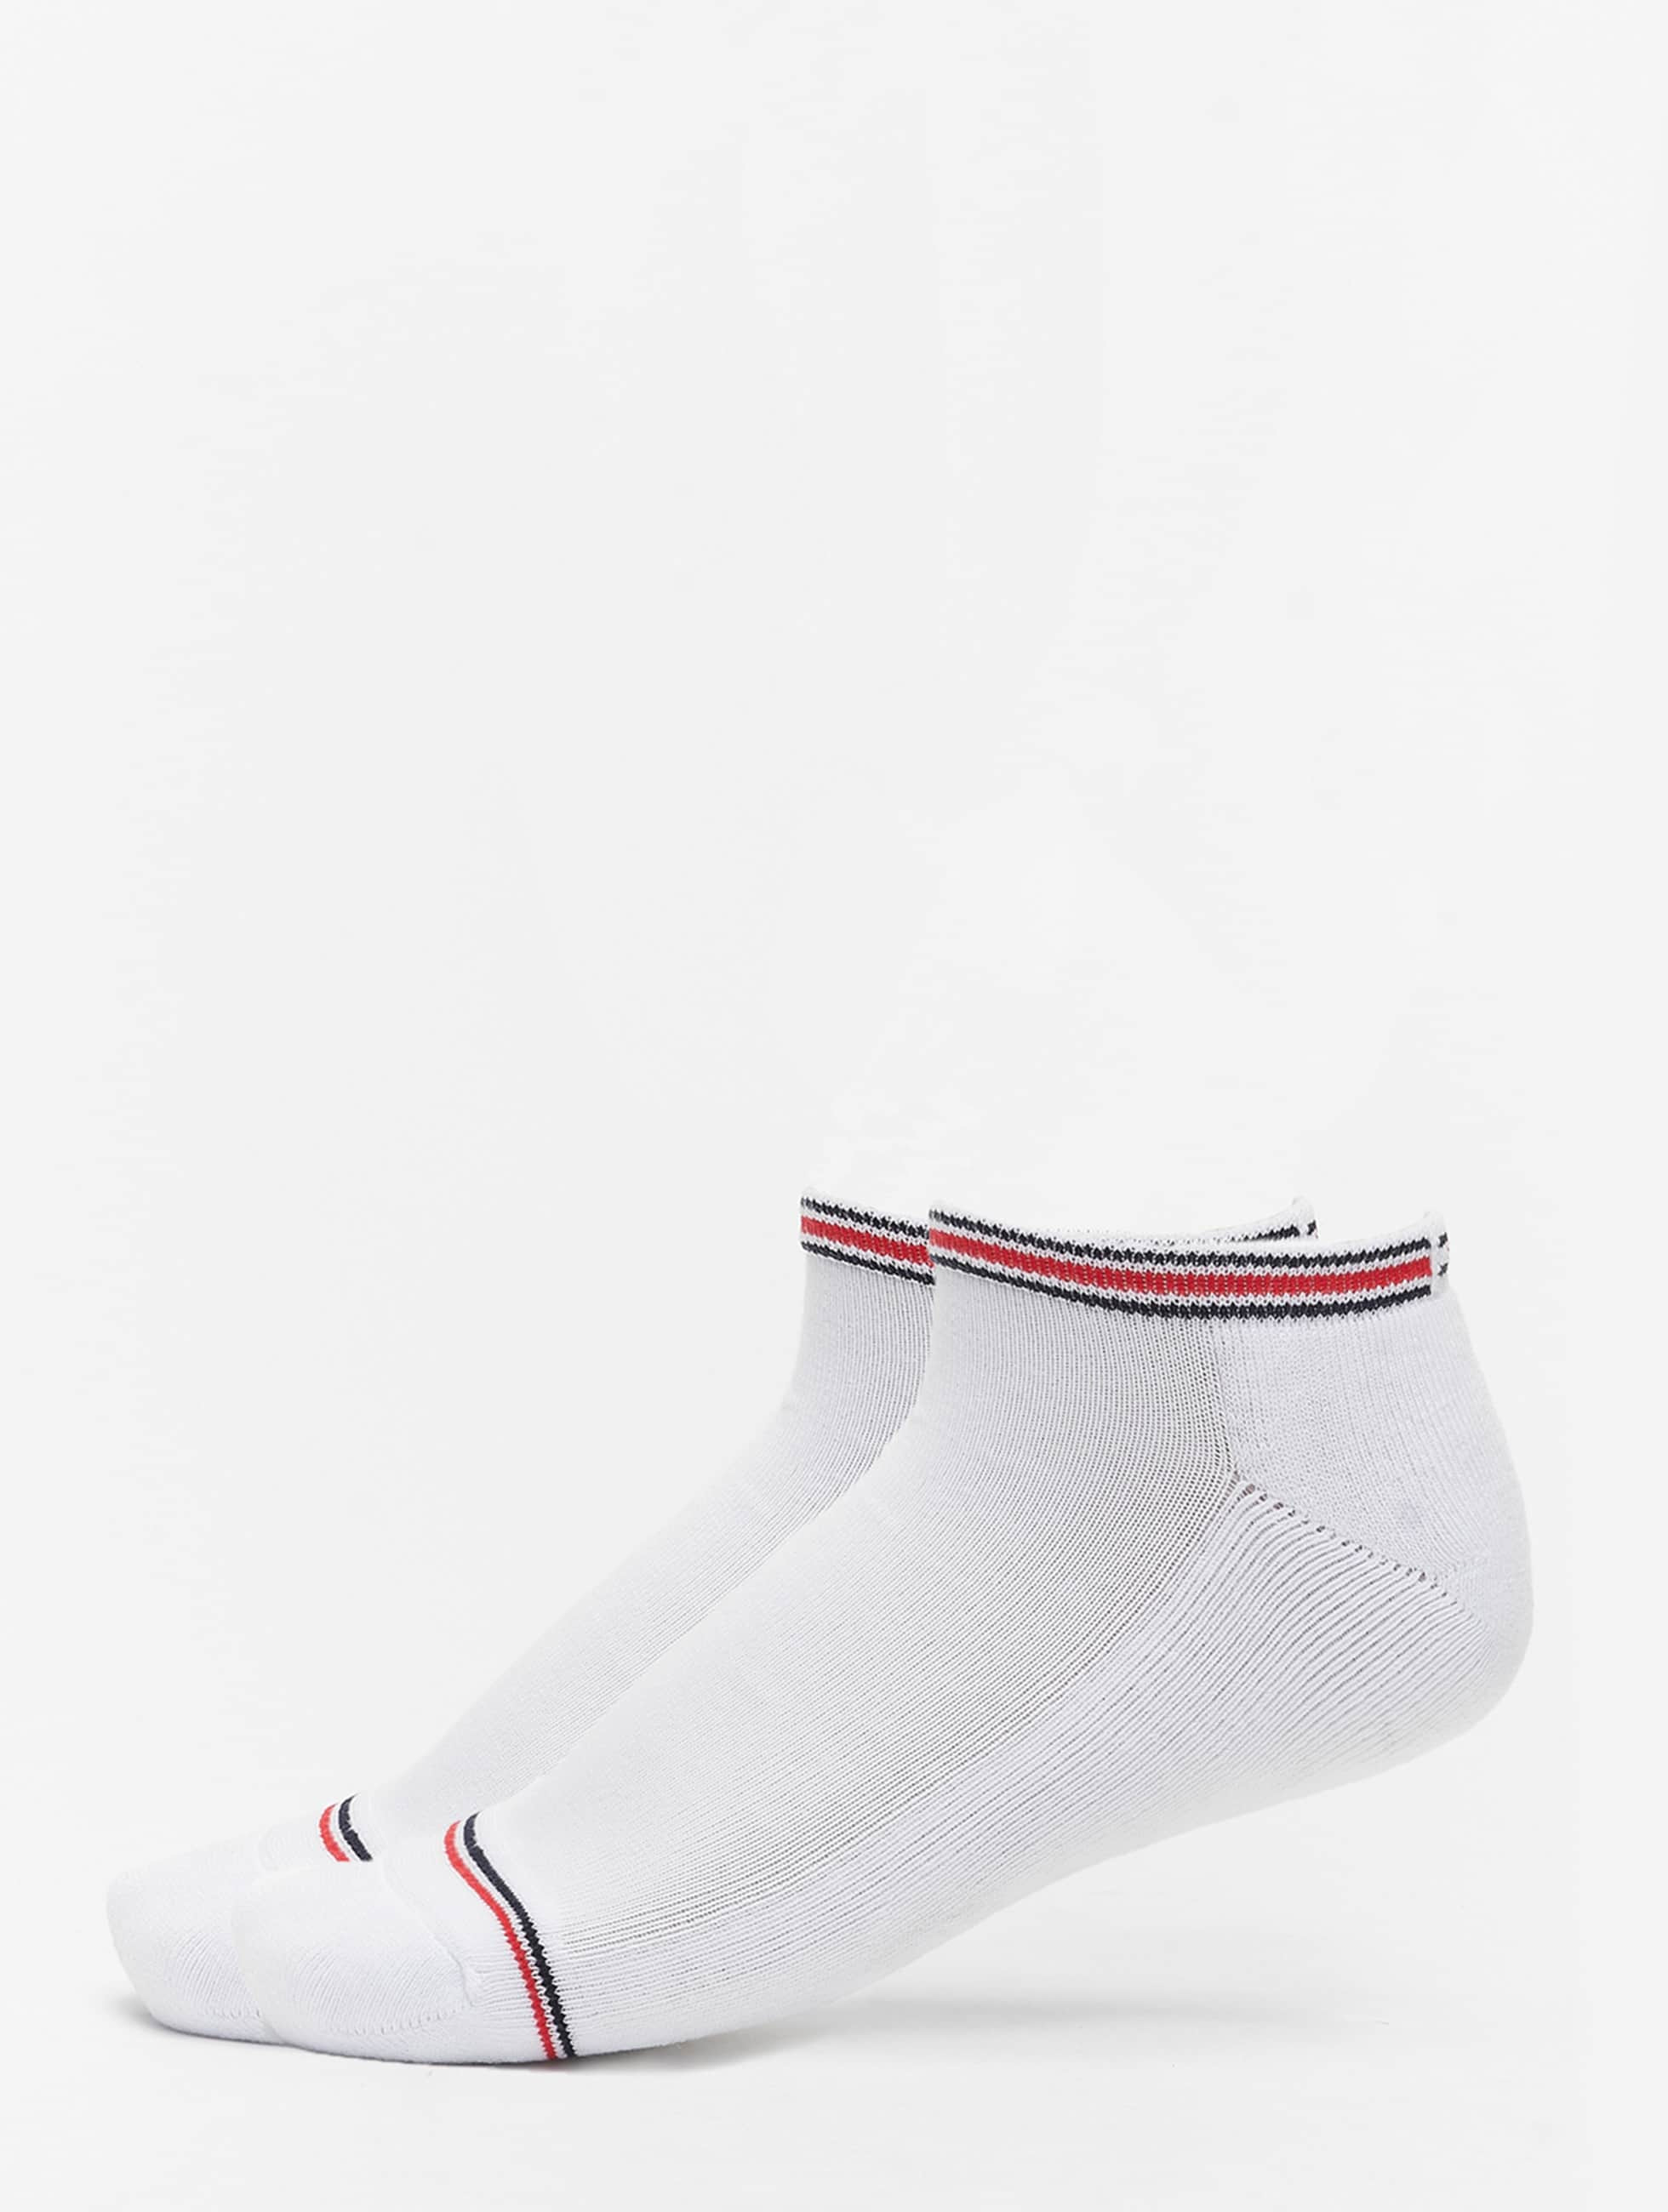 Tommy Hilfiger Iconic Sports 2P Sneaker Socks White